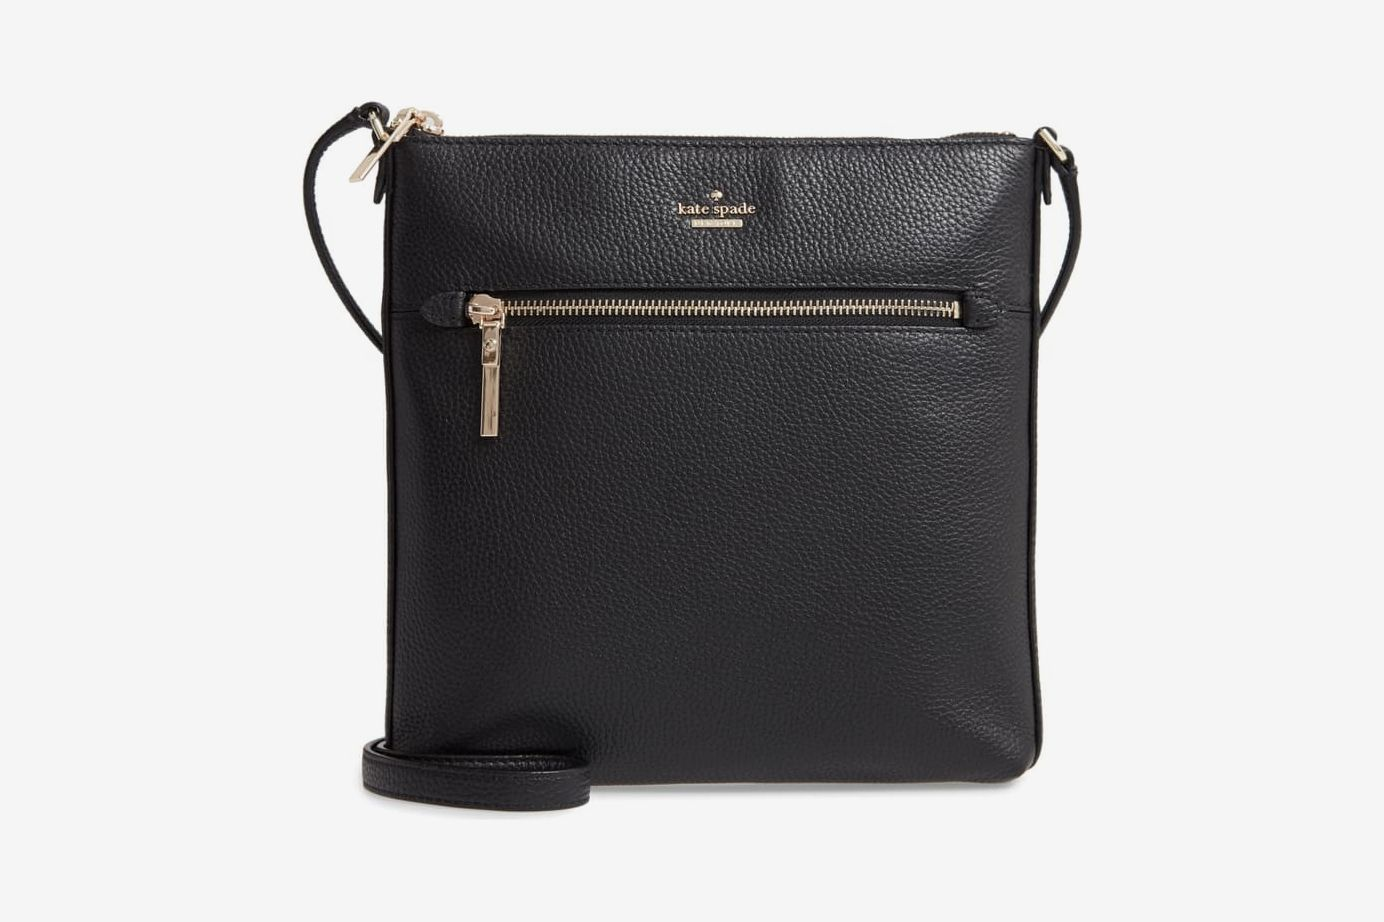 Kate Spade Large Shirley Crossbody Bag